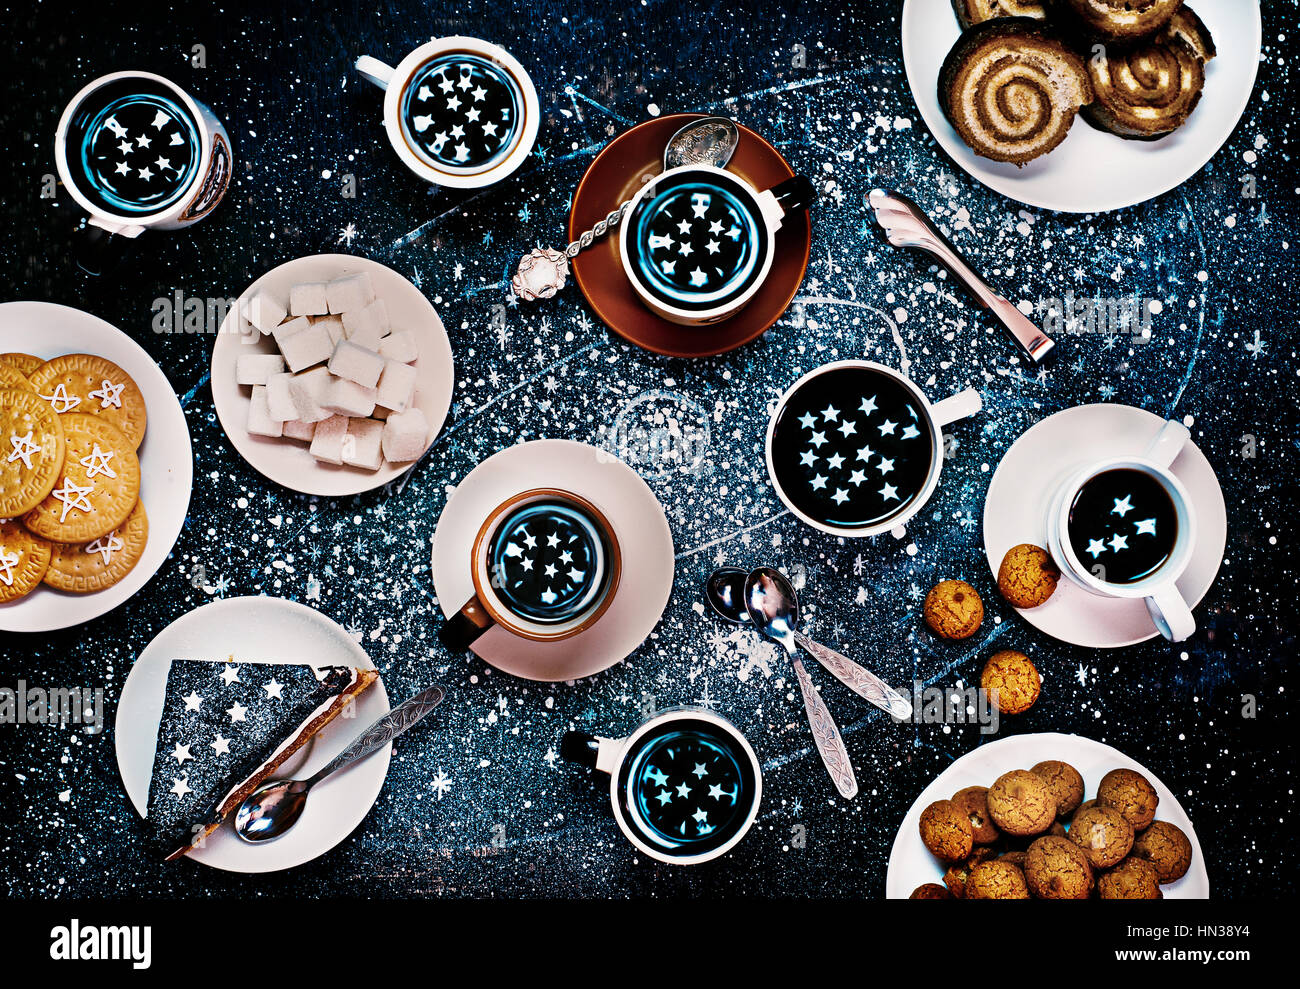 Tea party of astronomers, where the stars are reflecting in cups. Still life image shot from above. - Stock Image